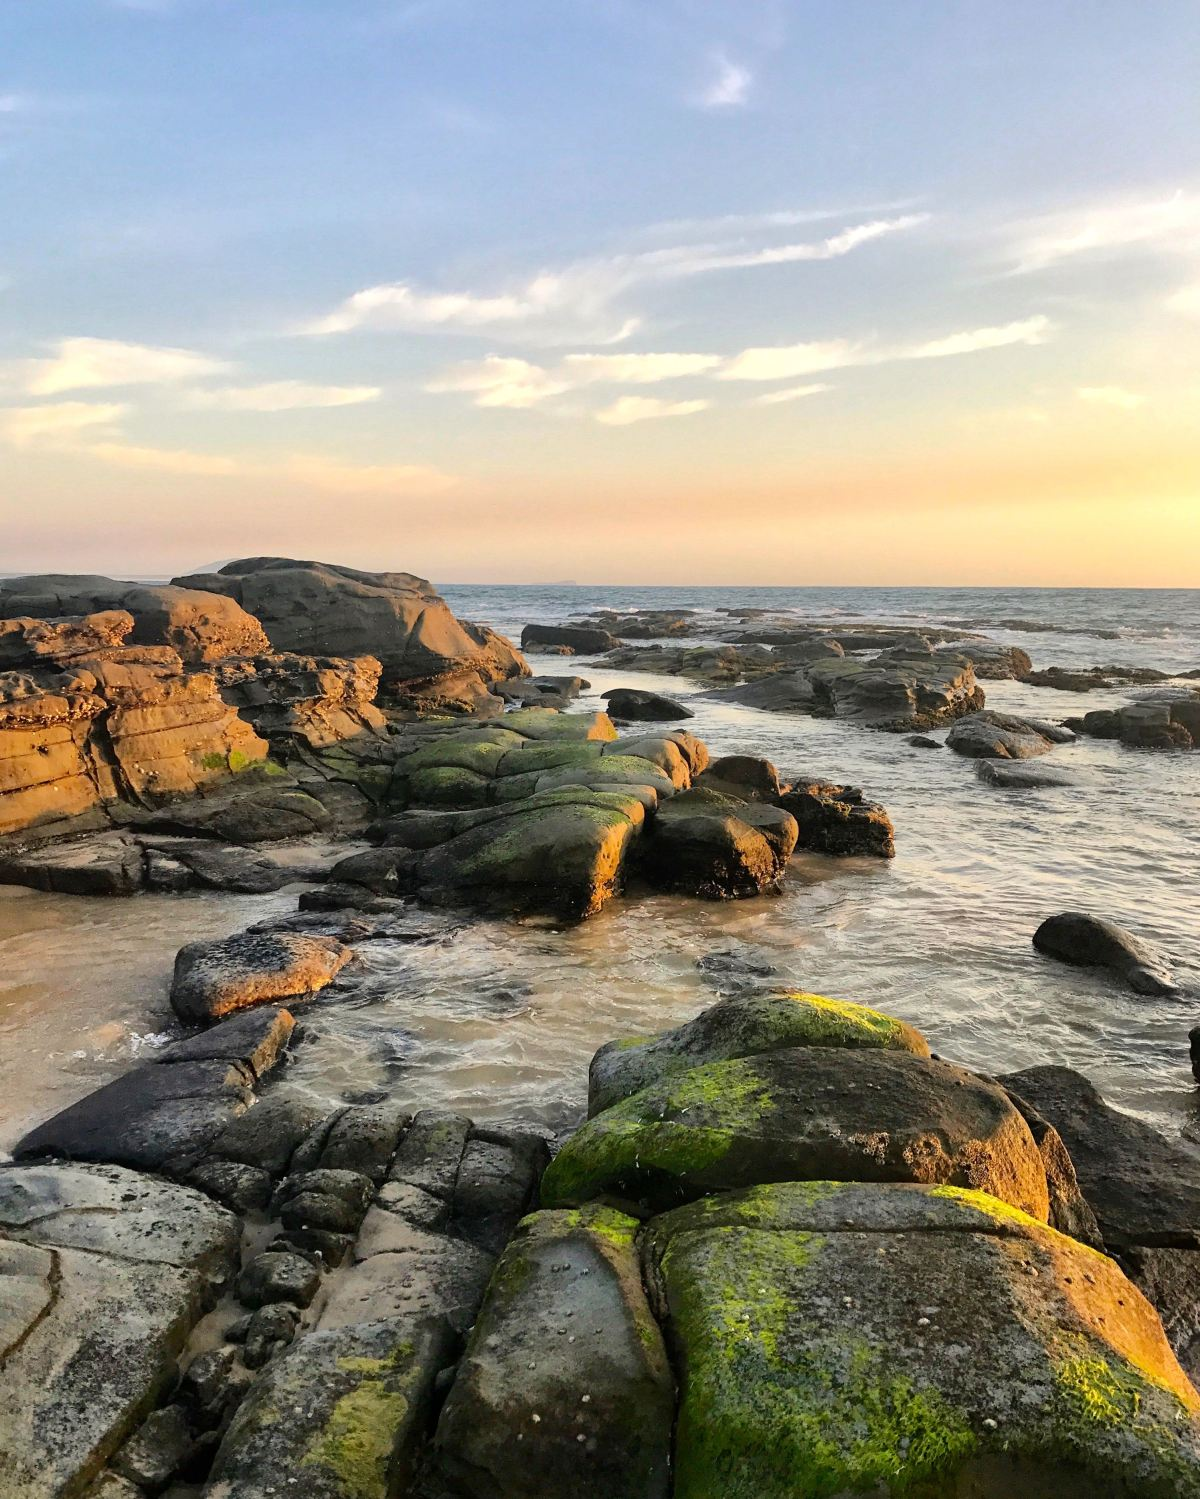 20 things to do on the Sunshine Coast thisSpring